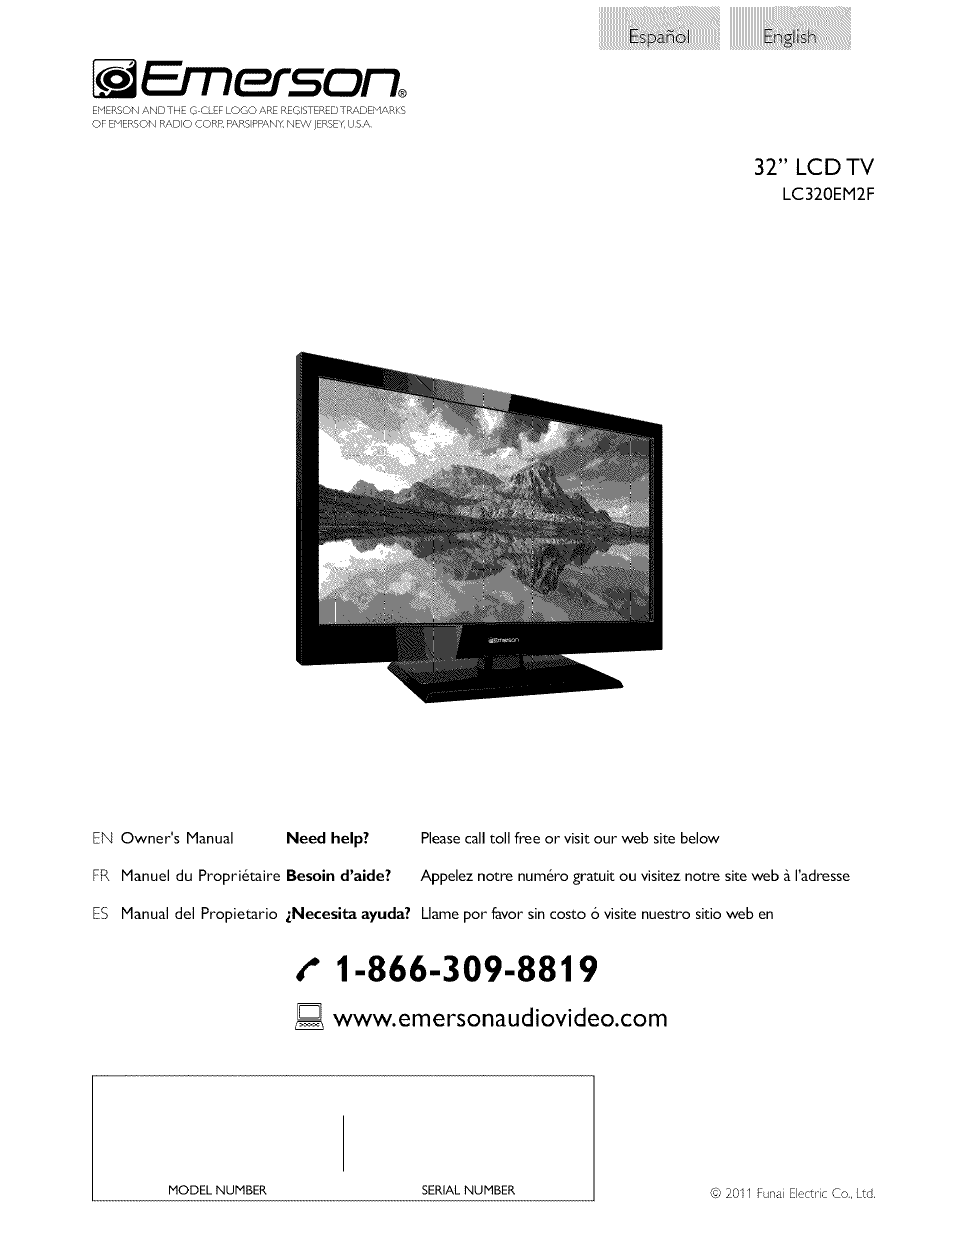 emerson lc320em2f owner s manual free pdf download 33 pages rh manualagent com Emerson LCD TV Ratings 50 Inch Emerson TV Manual